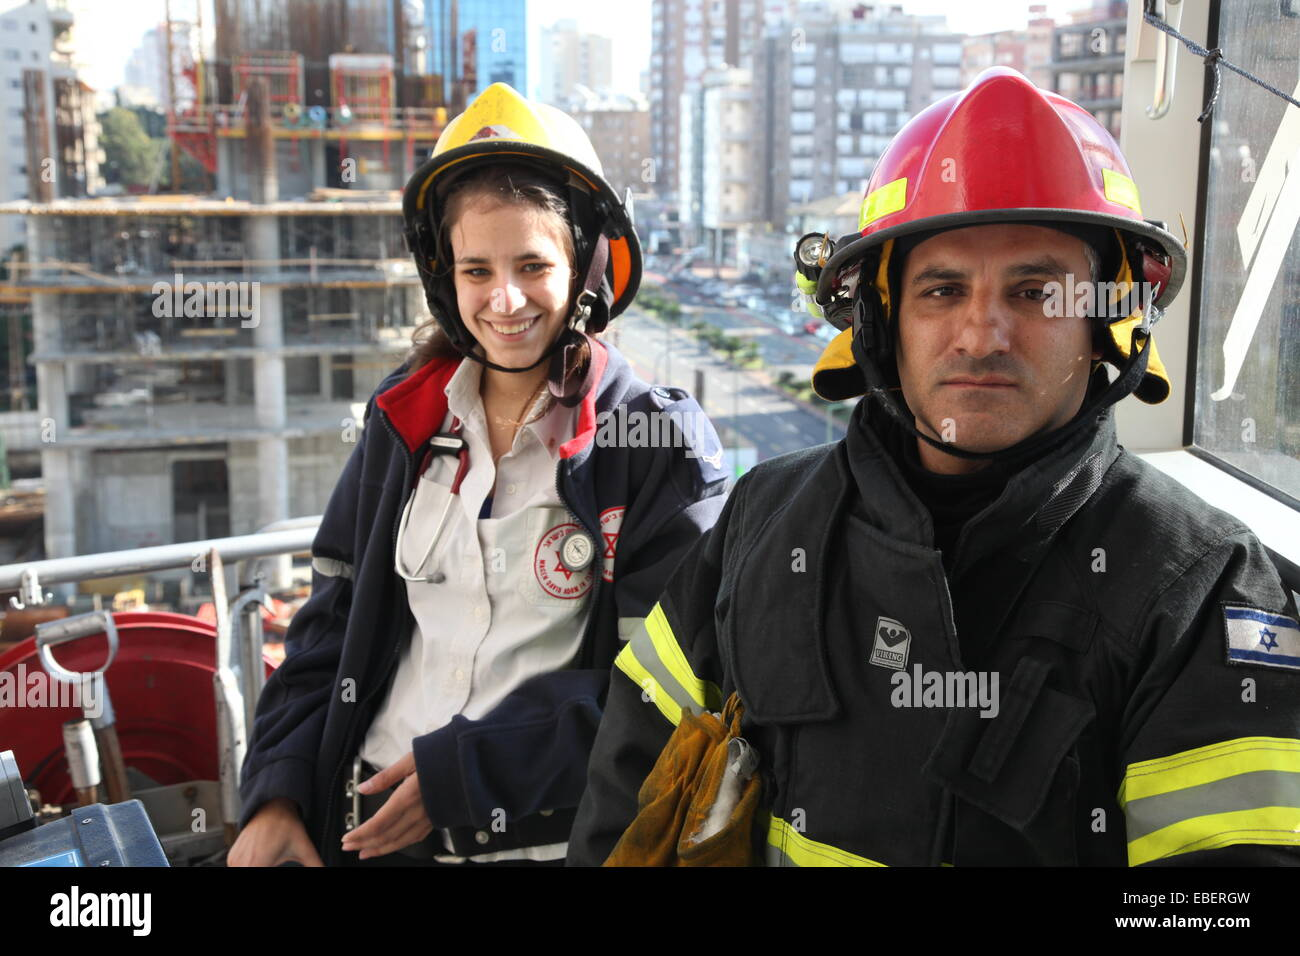 Ramat Gan, Israel. 28th November, 2014. Firefighter and medical aide person wait for injured victims for evacuation - Stock Image